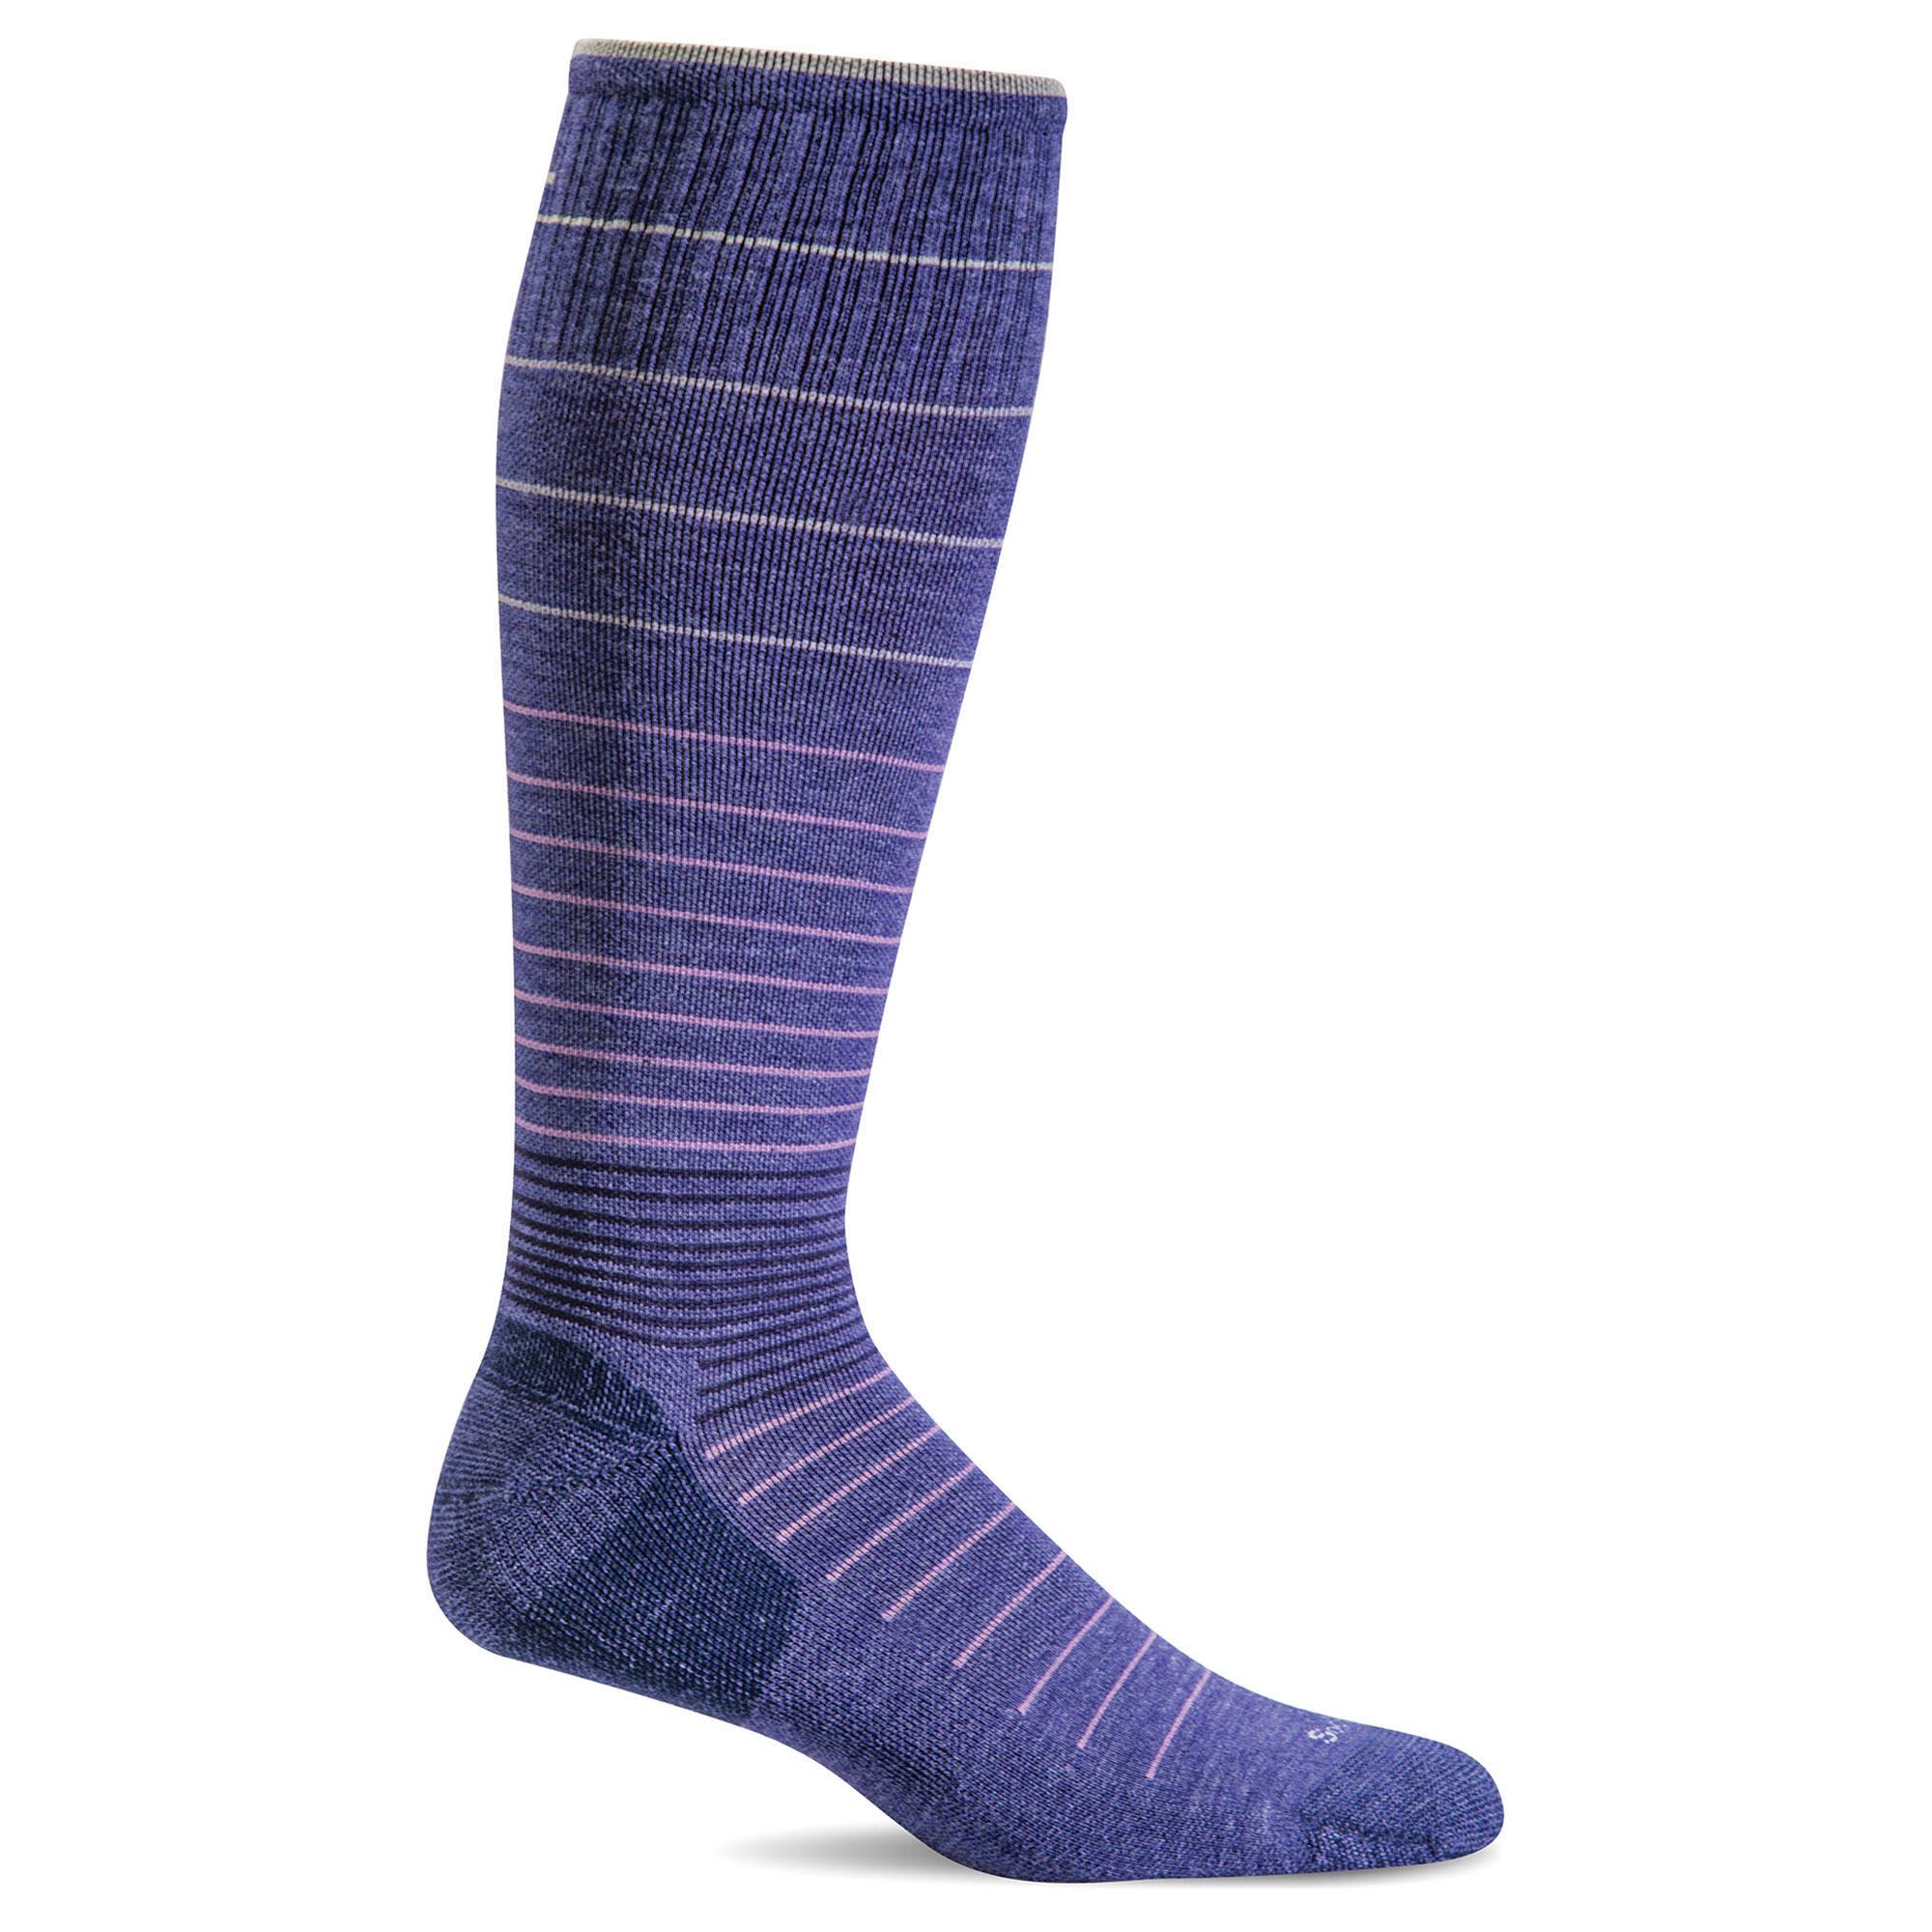 Sockwell Women's Circulator Graduated Compression Socks Hyacinth / M/L